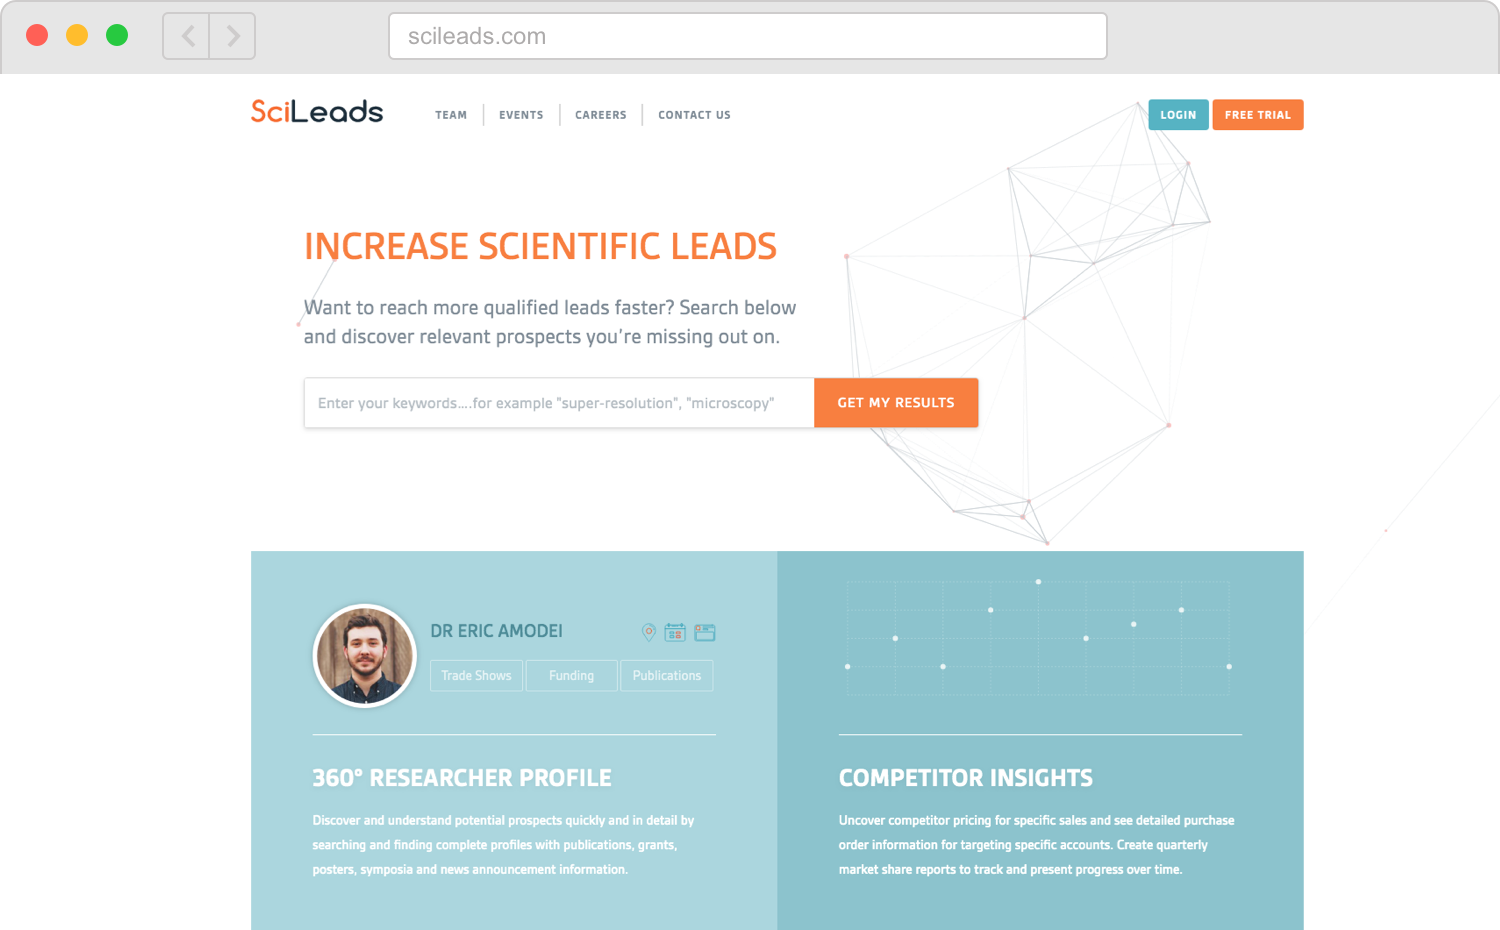 SciLeads